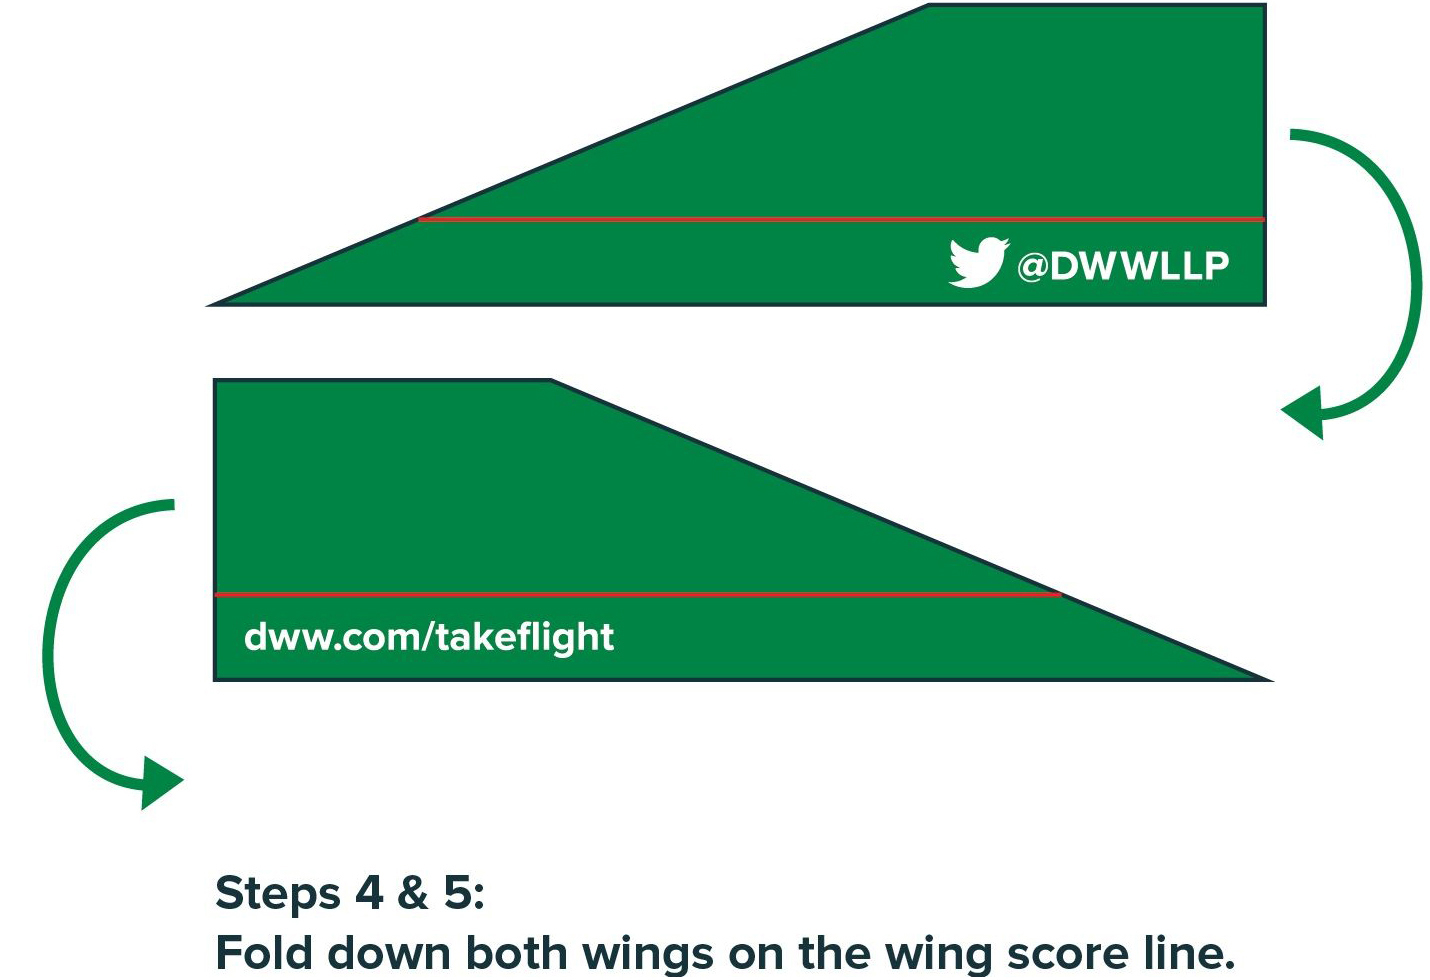 Steps 4 & 5: Fold down both wings on the wing score line.